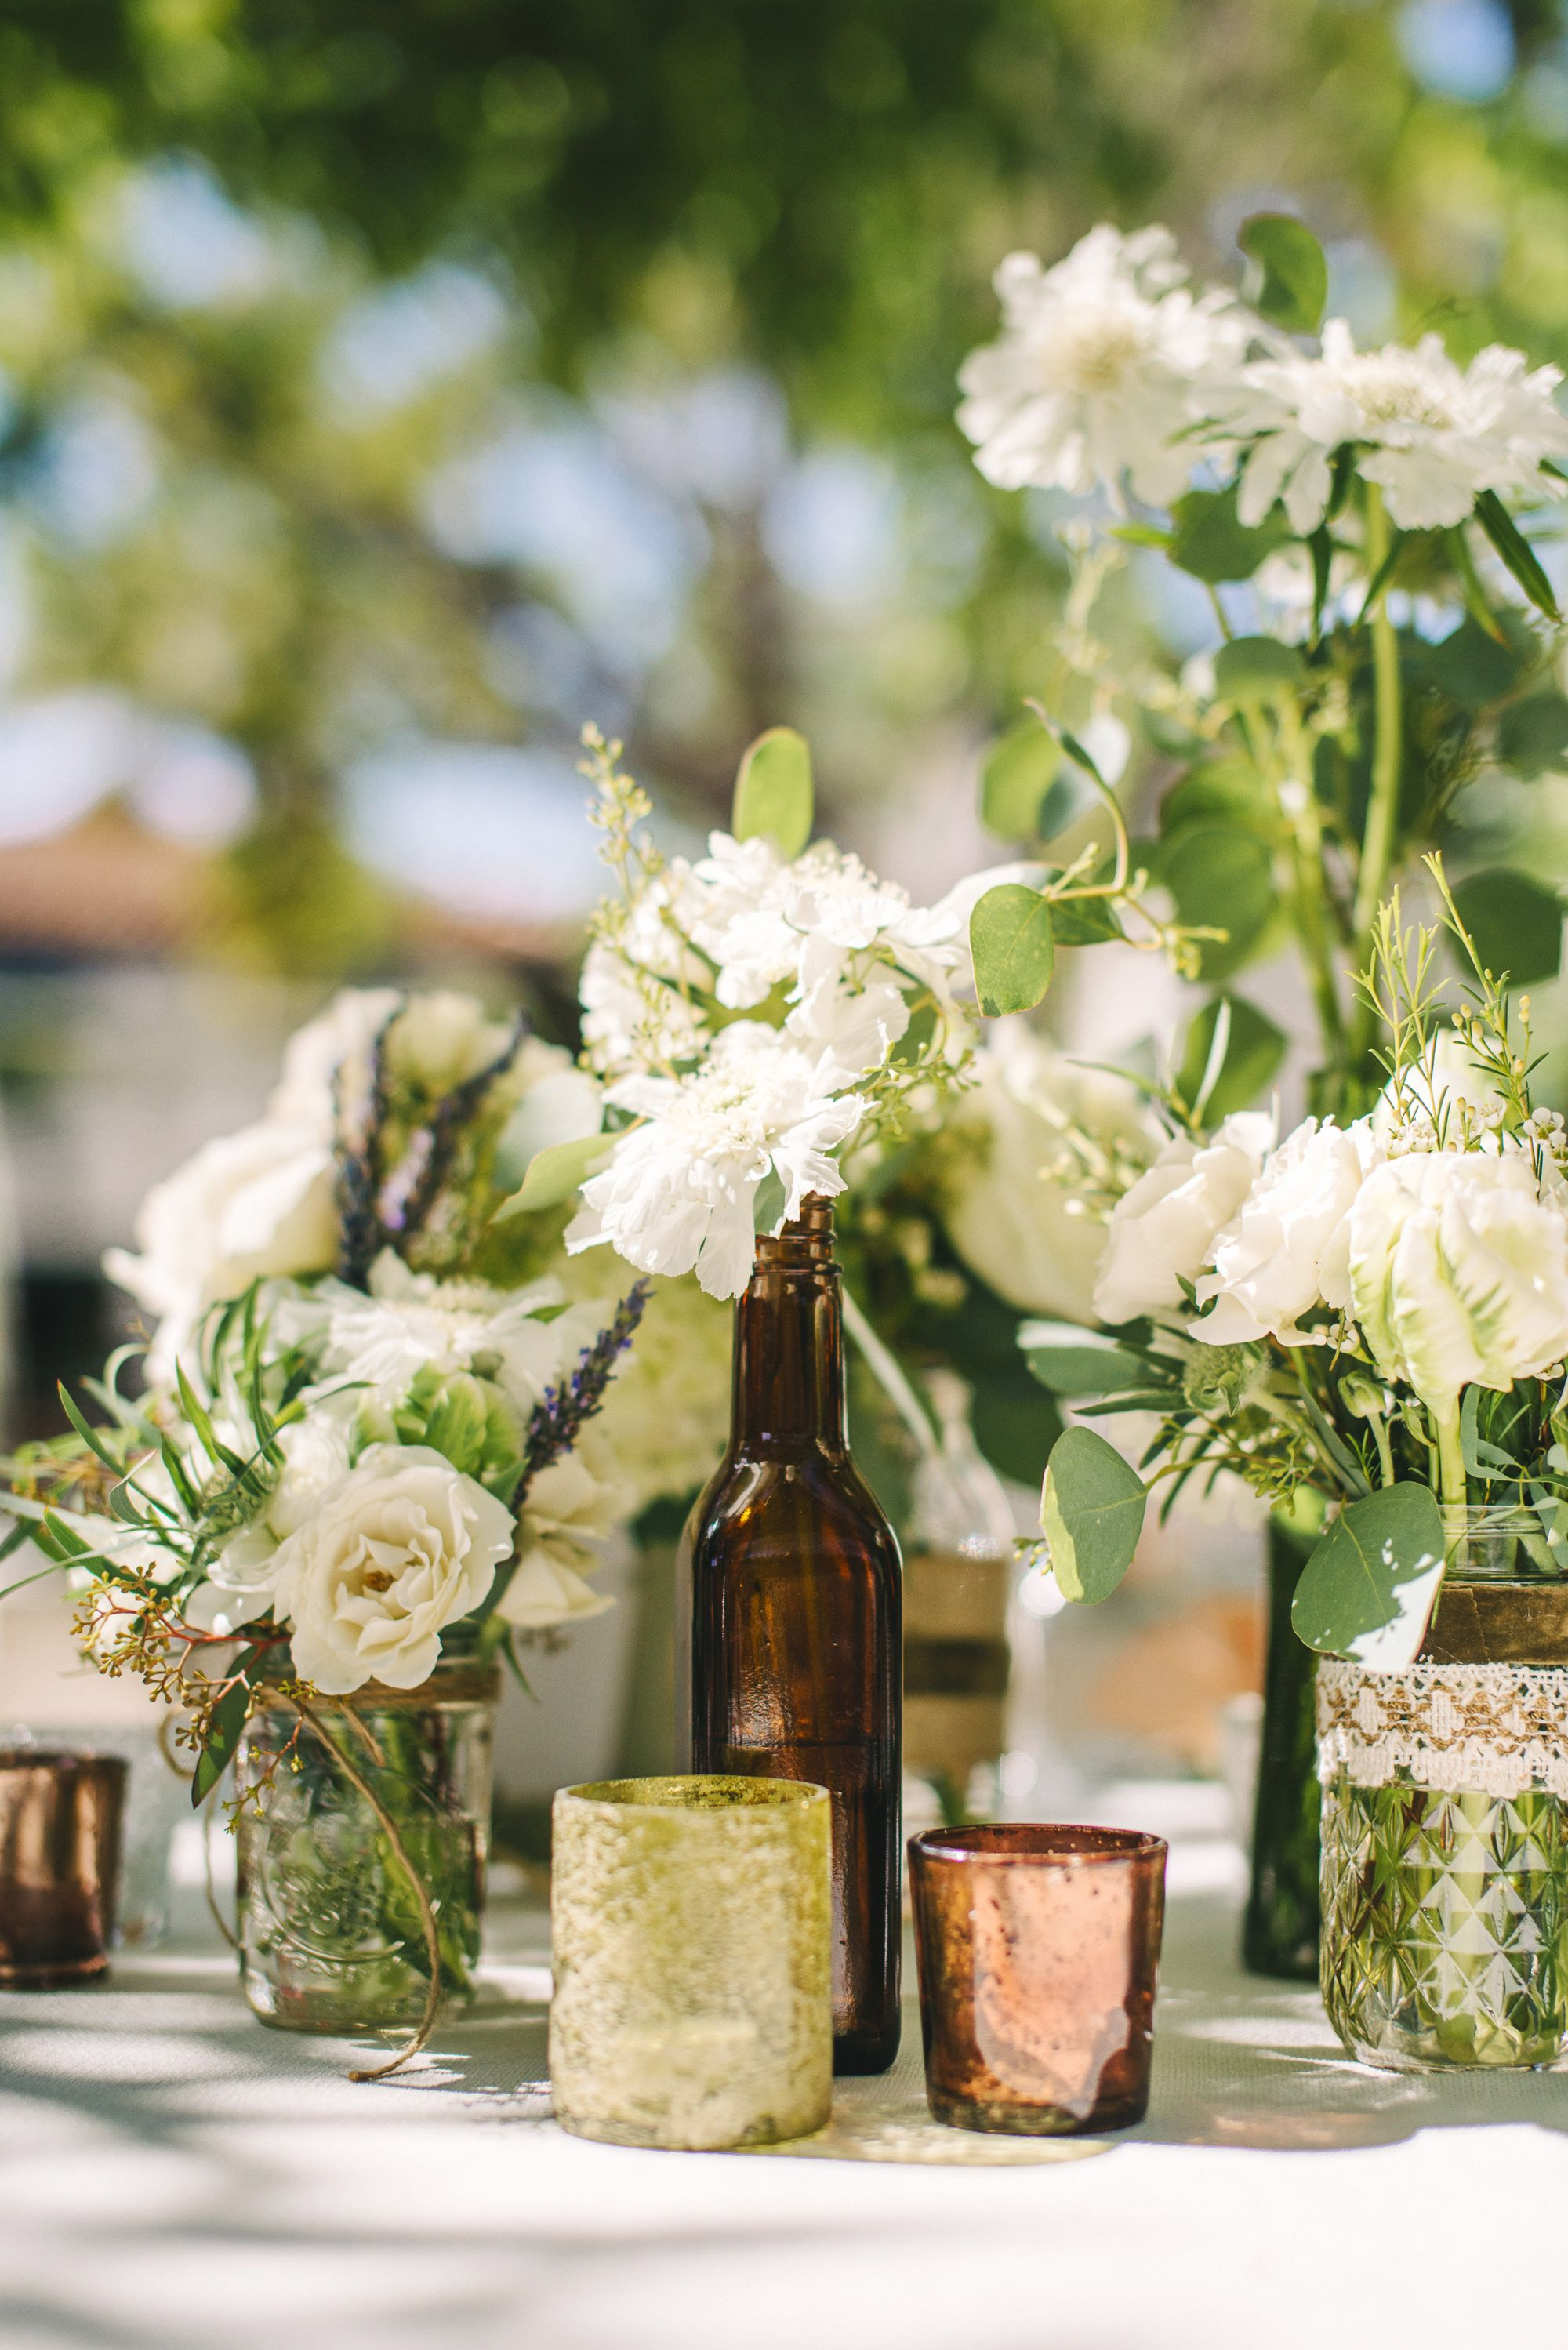 Glass Bottles For Wedding Decorations Ivory Flowers In Glassbottle Centerpiece  Elyse Wedding Ideas